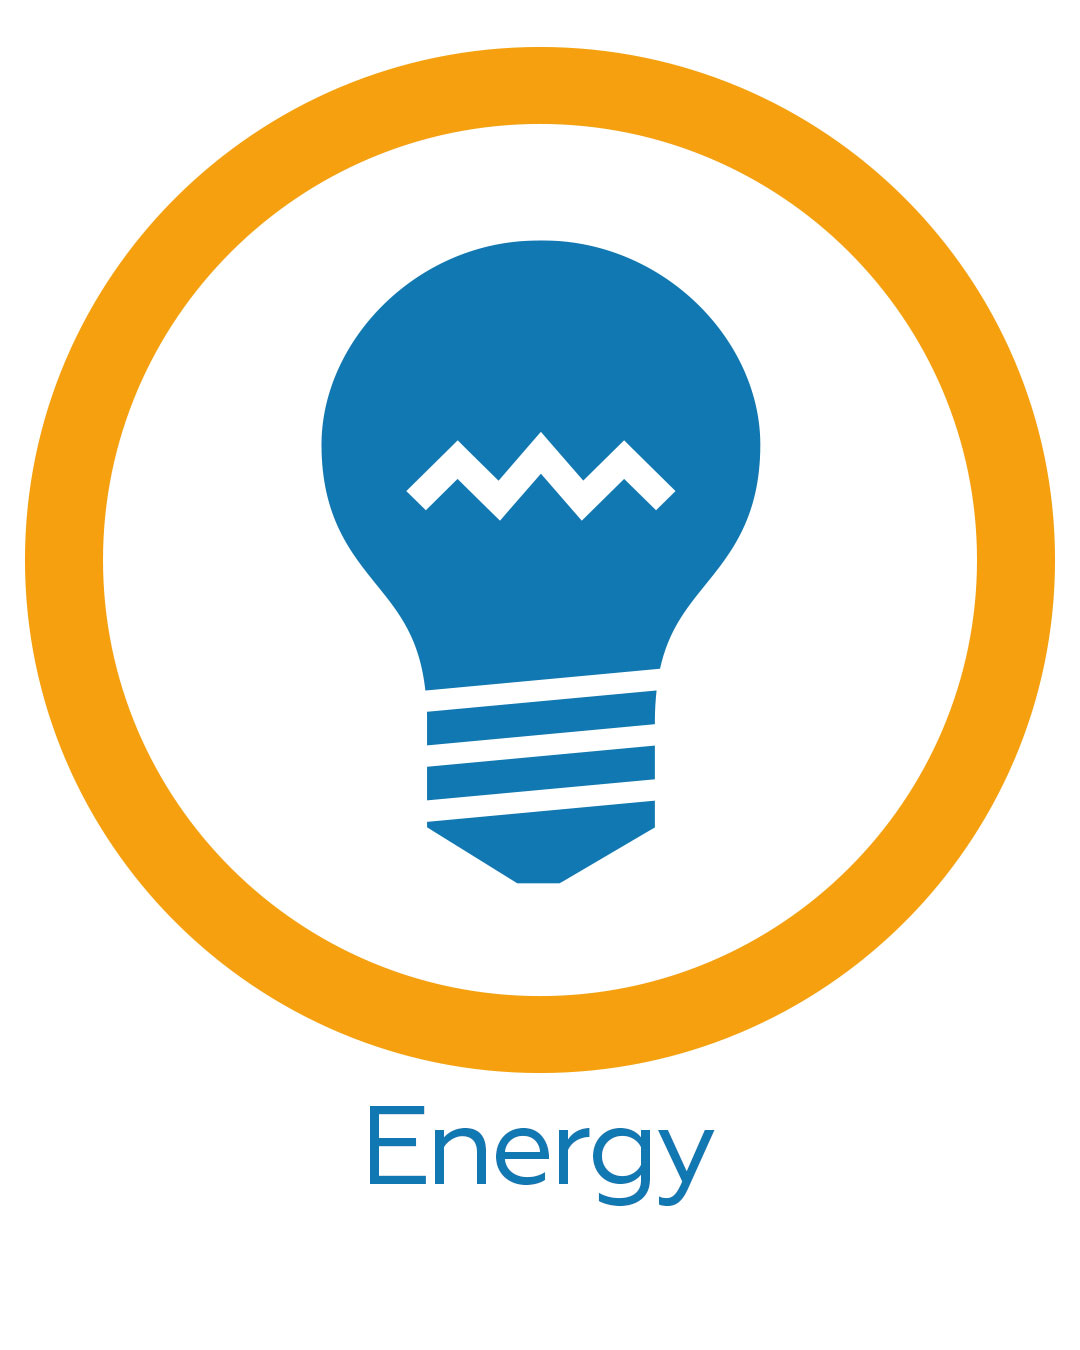 Hire engineers in the energy sector